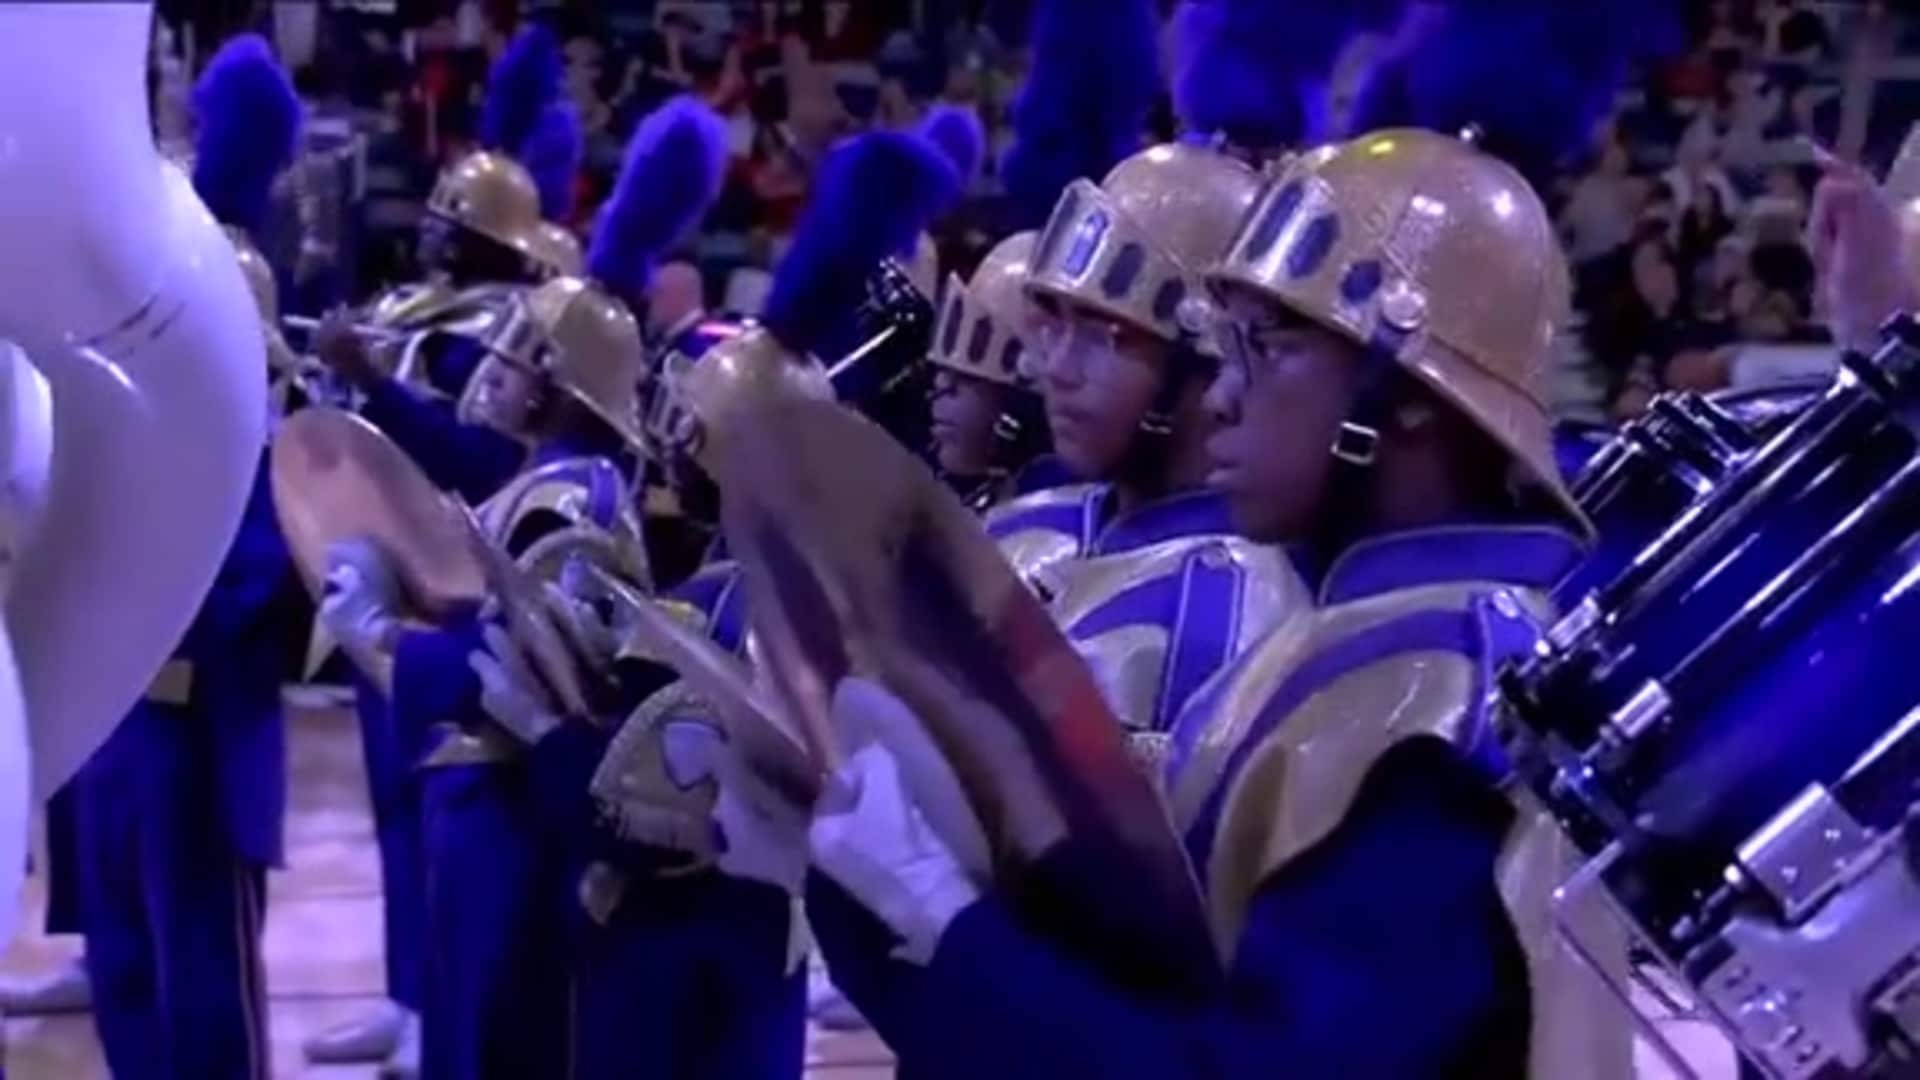 Pelicans Halftime: St. Aug Marching 100 Band - January 24, 2020 vs. Denver Nuggets